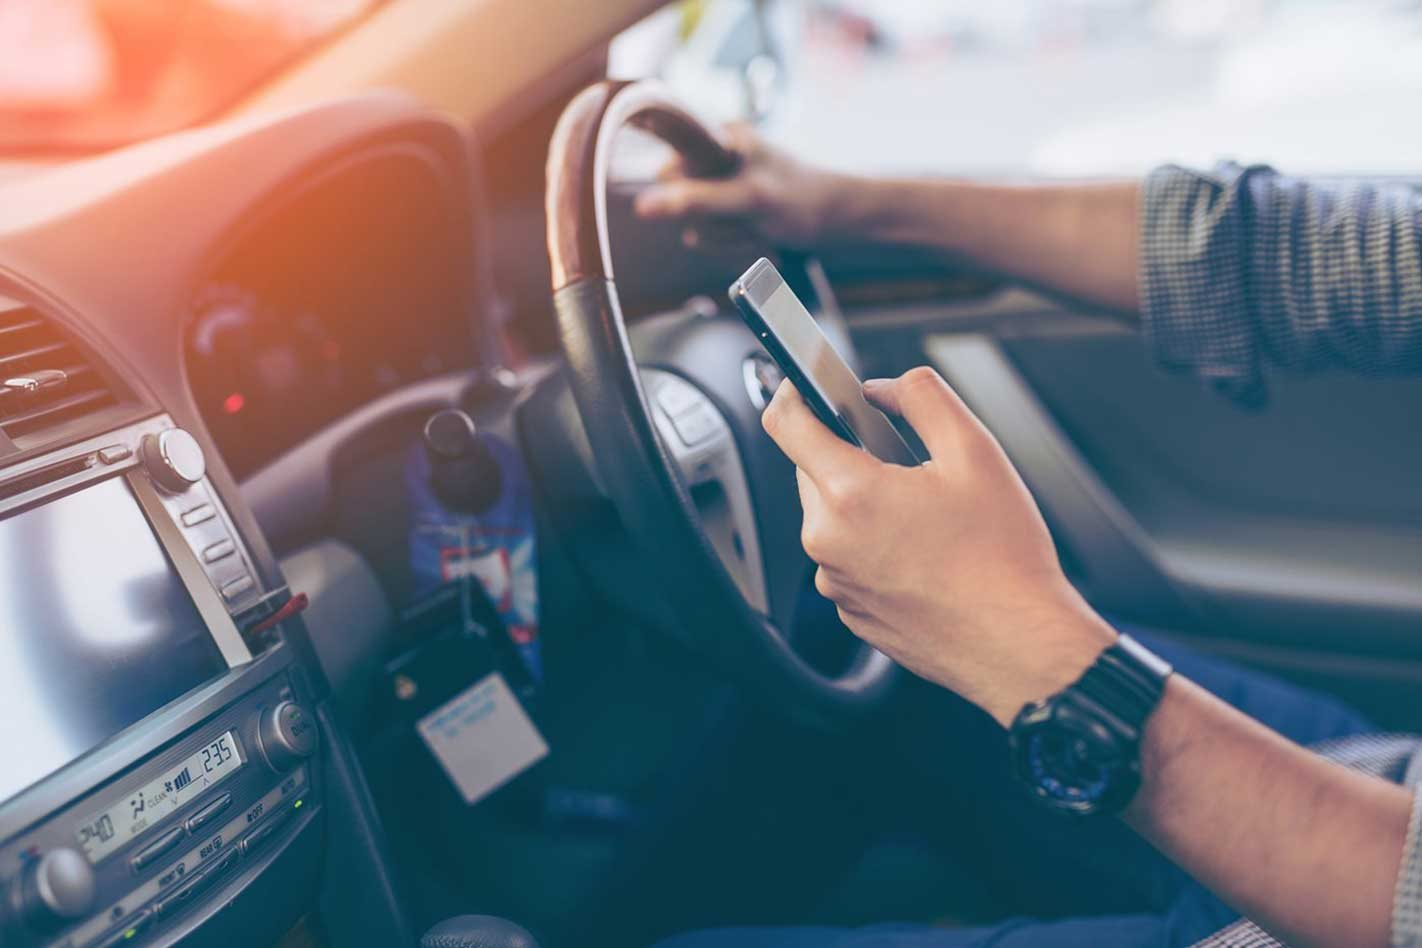 Opinion: Some drivers are not meant to be on the road